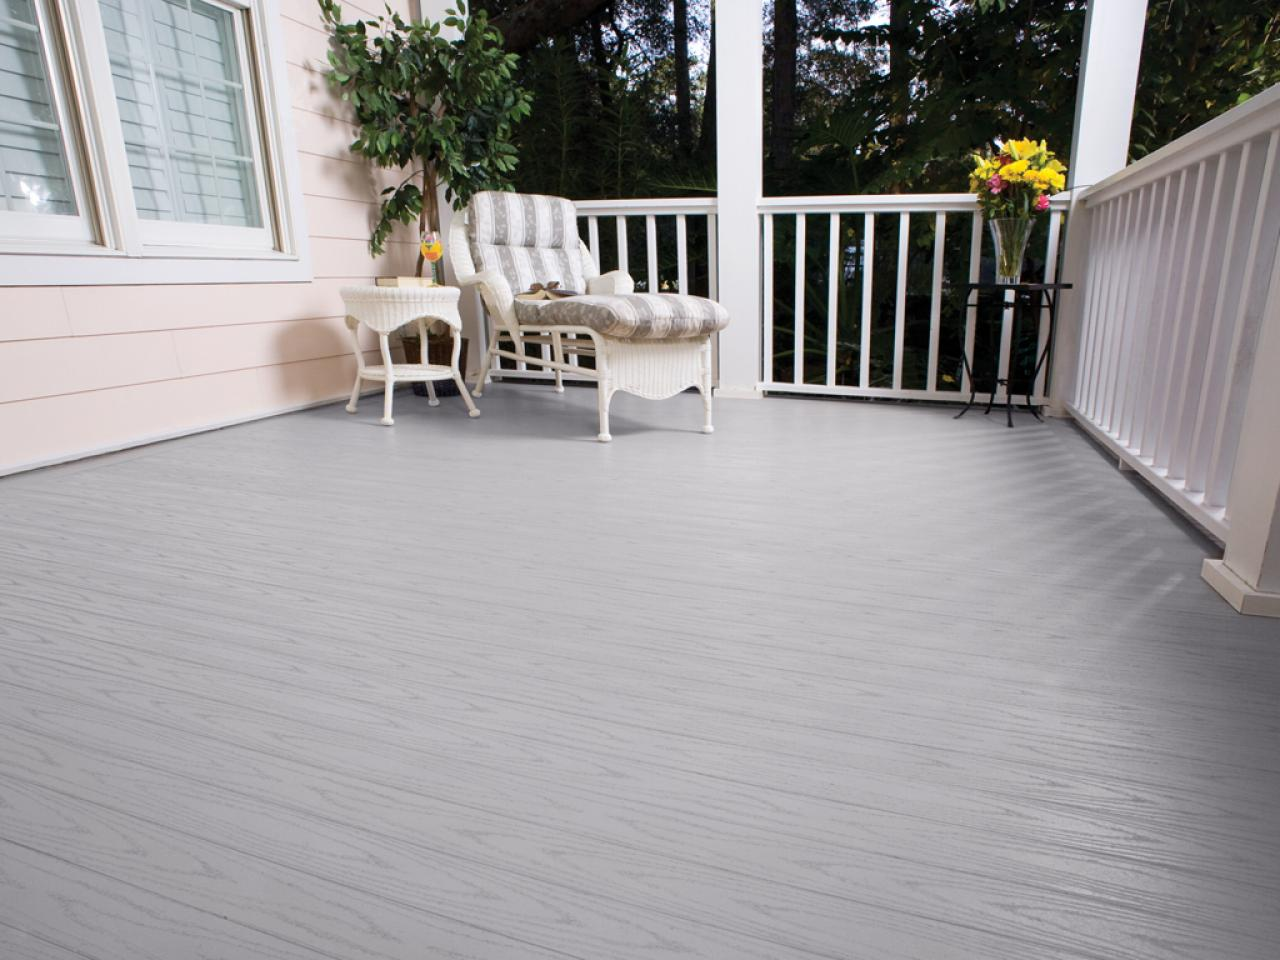 Image of: Composite Porch Flooring Colors